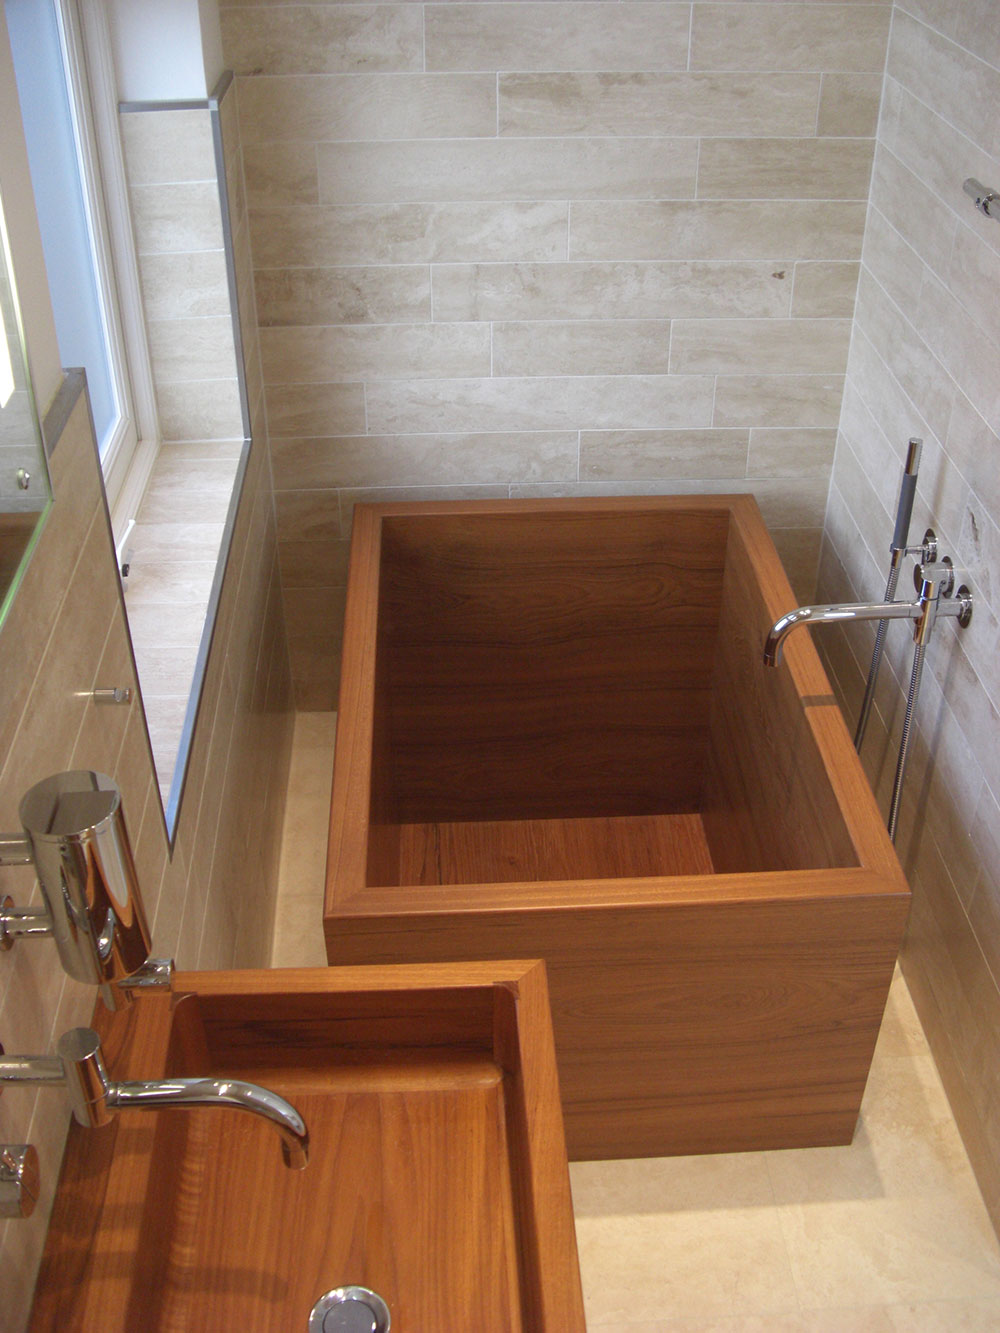 Japanese teak bath tub